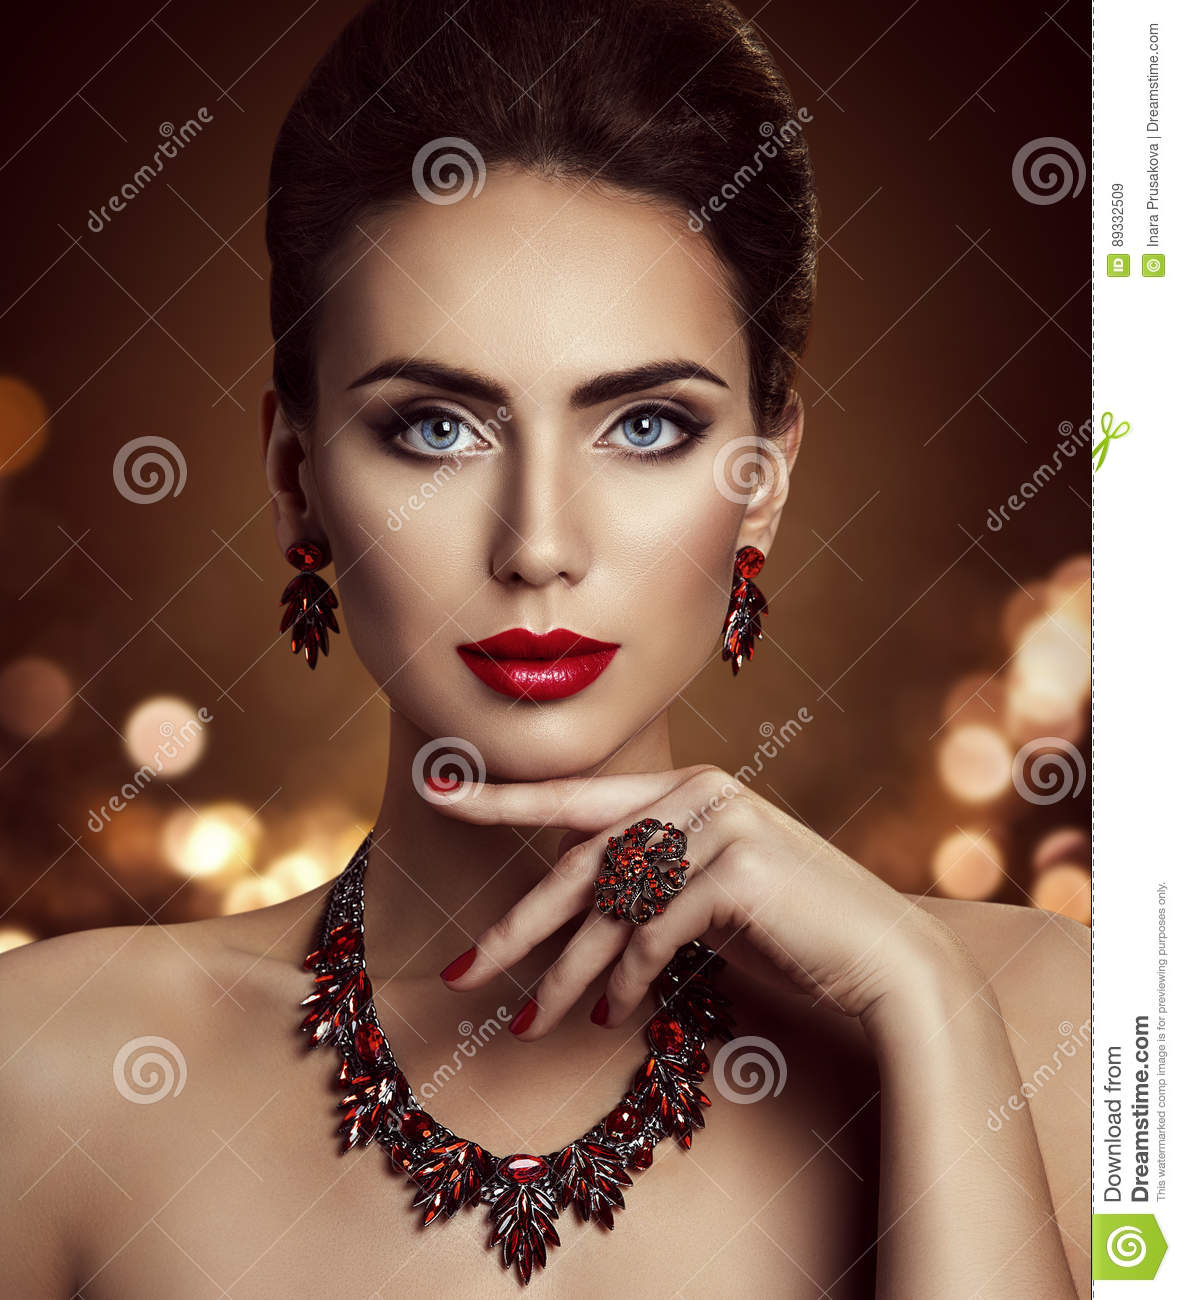 Fashion Model Beauty Makeup And Jewelry, Woman Face Make